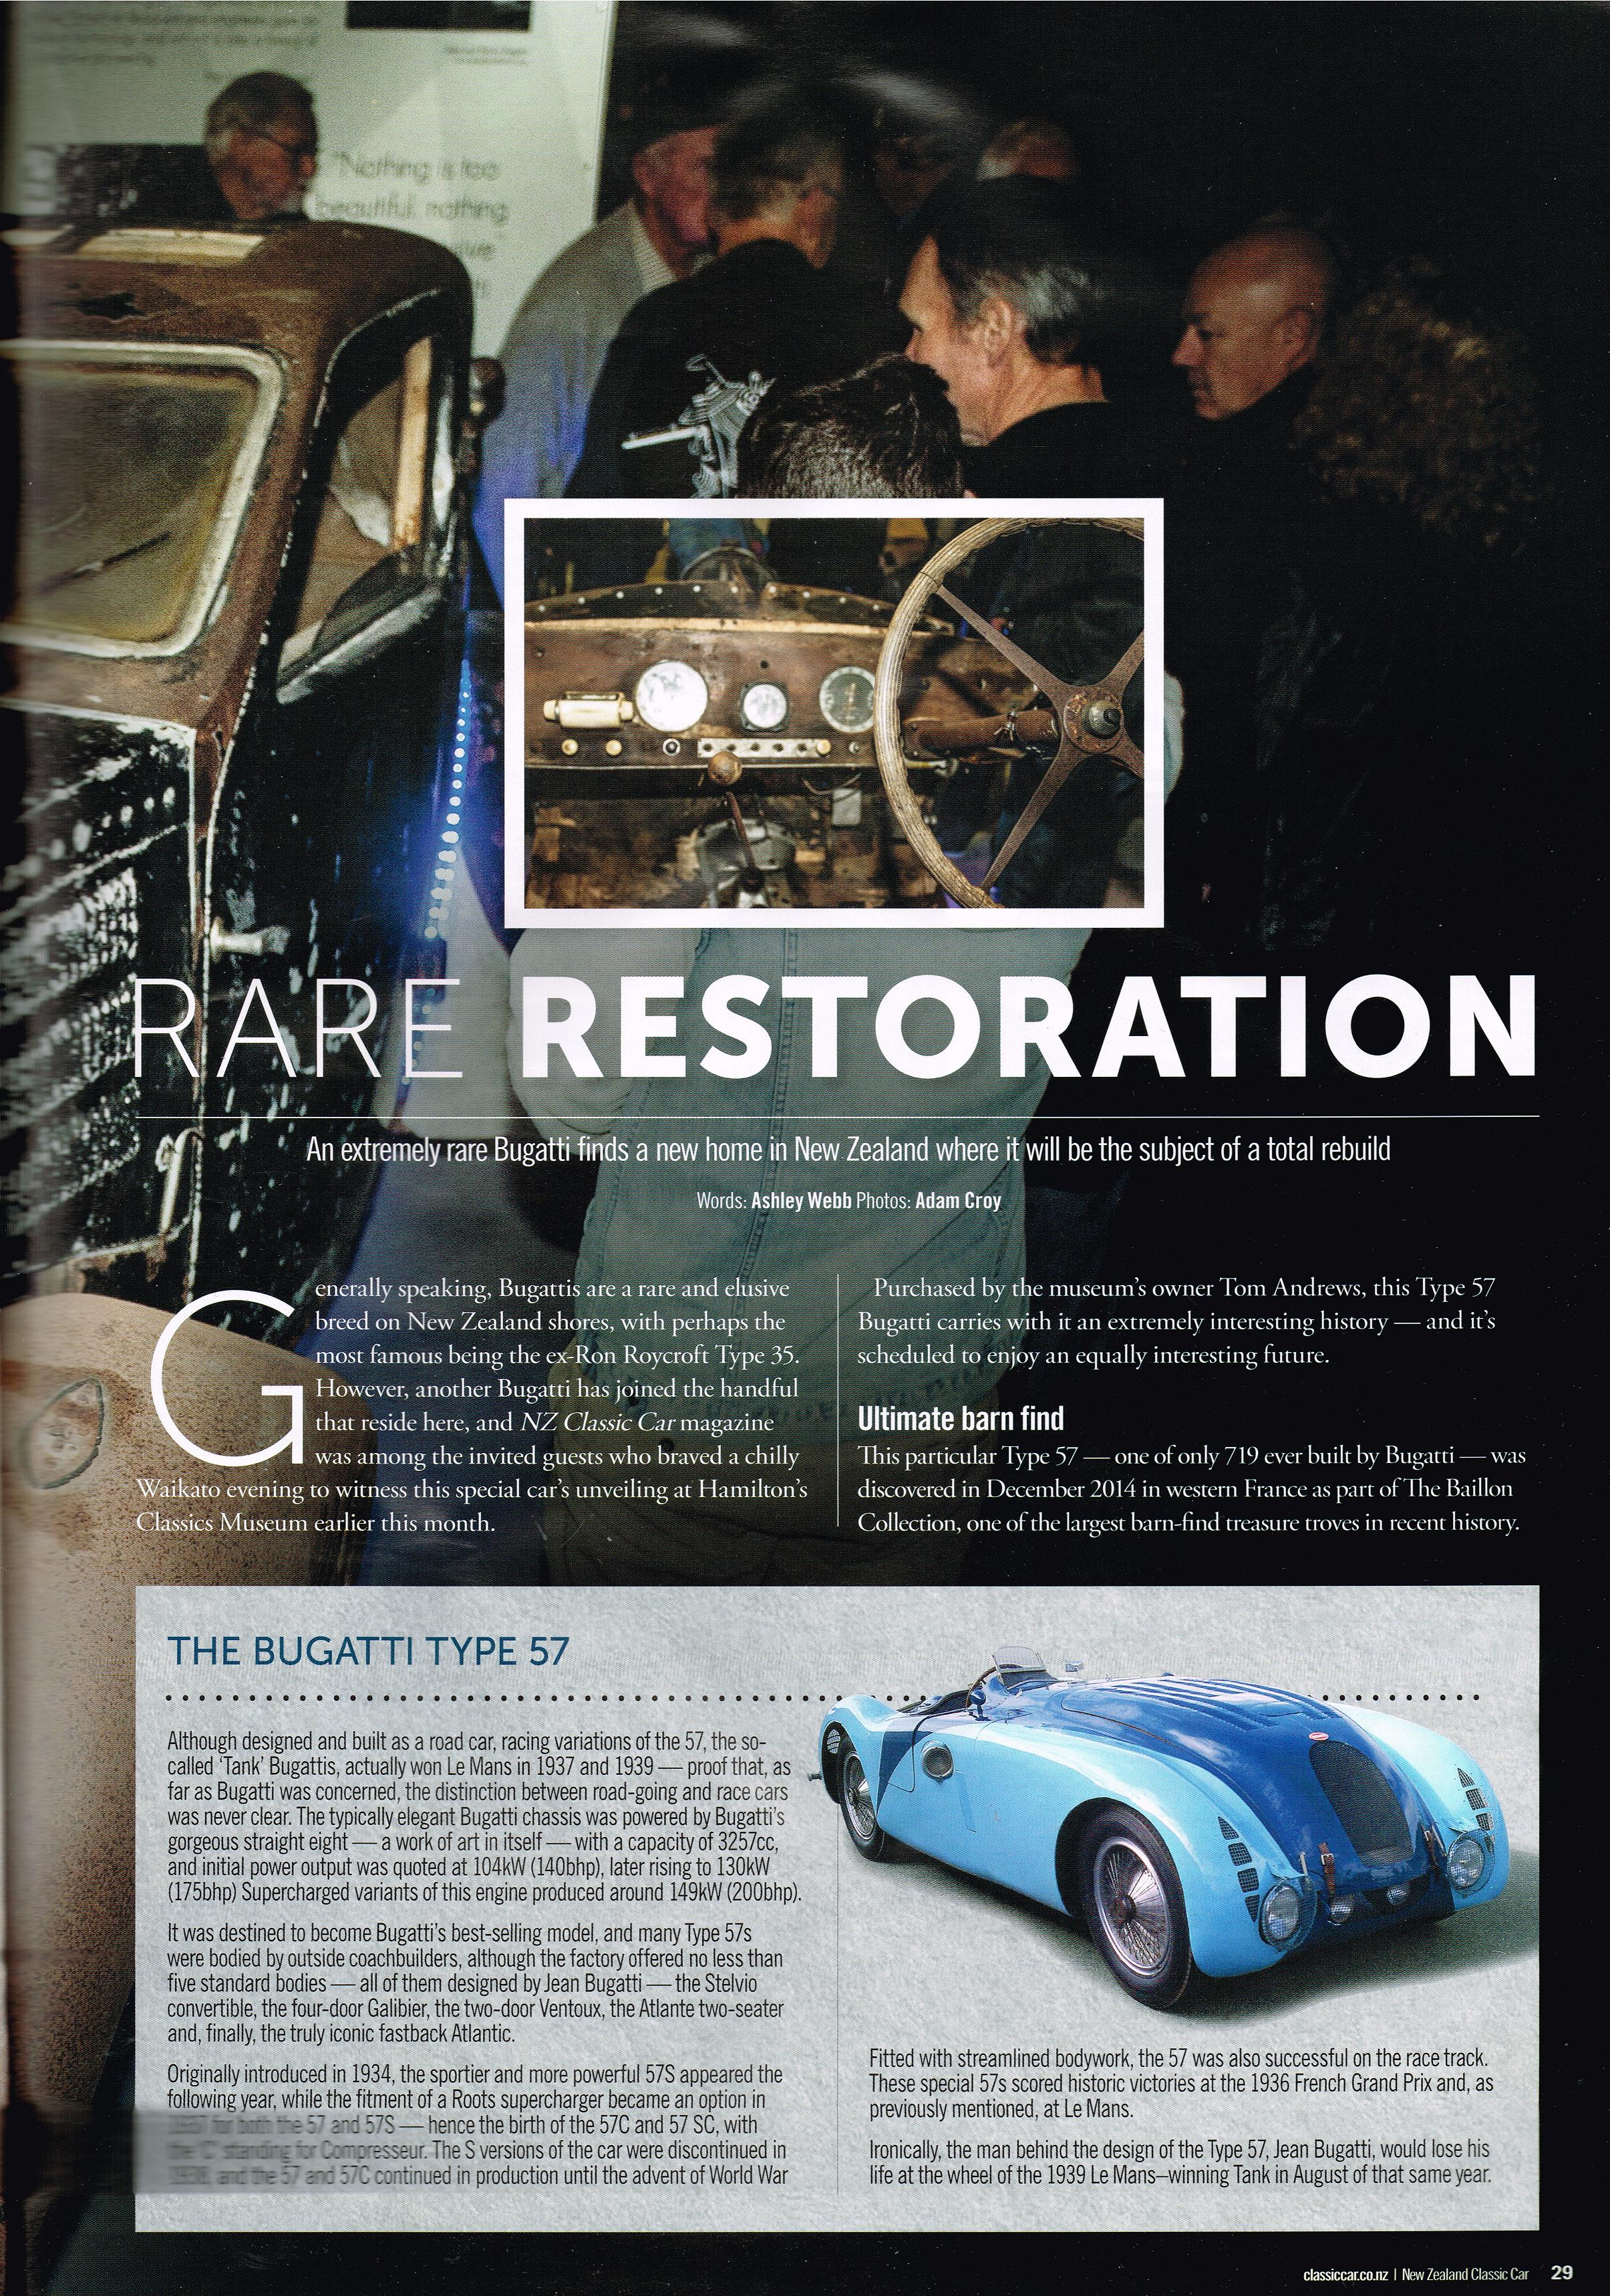 NZ Classic Car Magazine Aug 2015